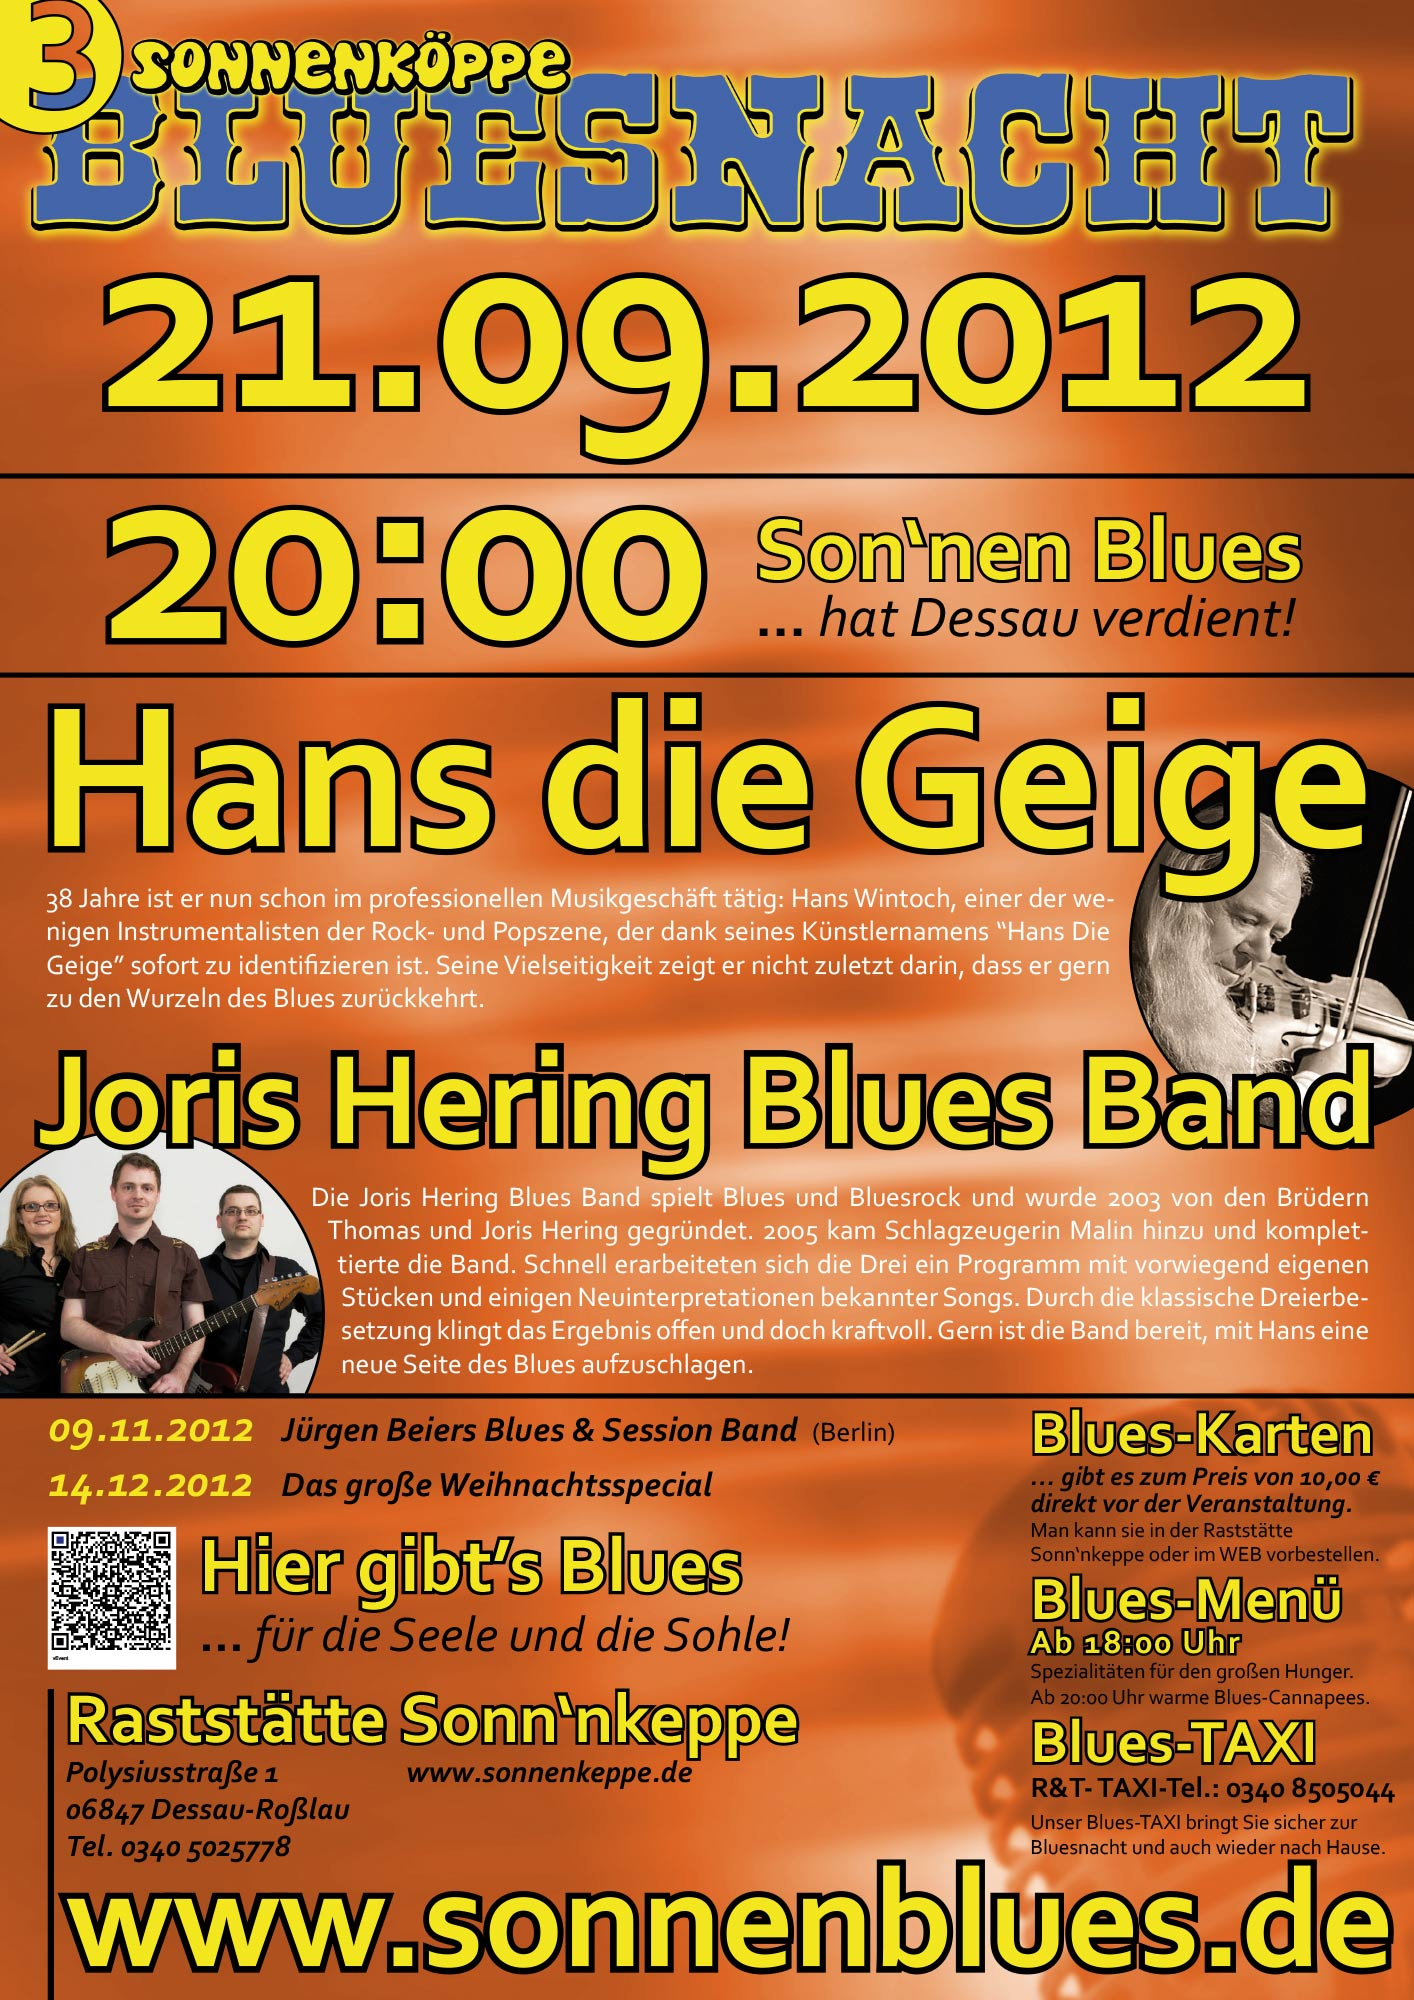 Bluesnacht #4 - Hans die Geige & Joris Hering Blues Band